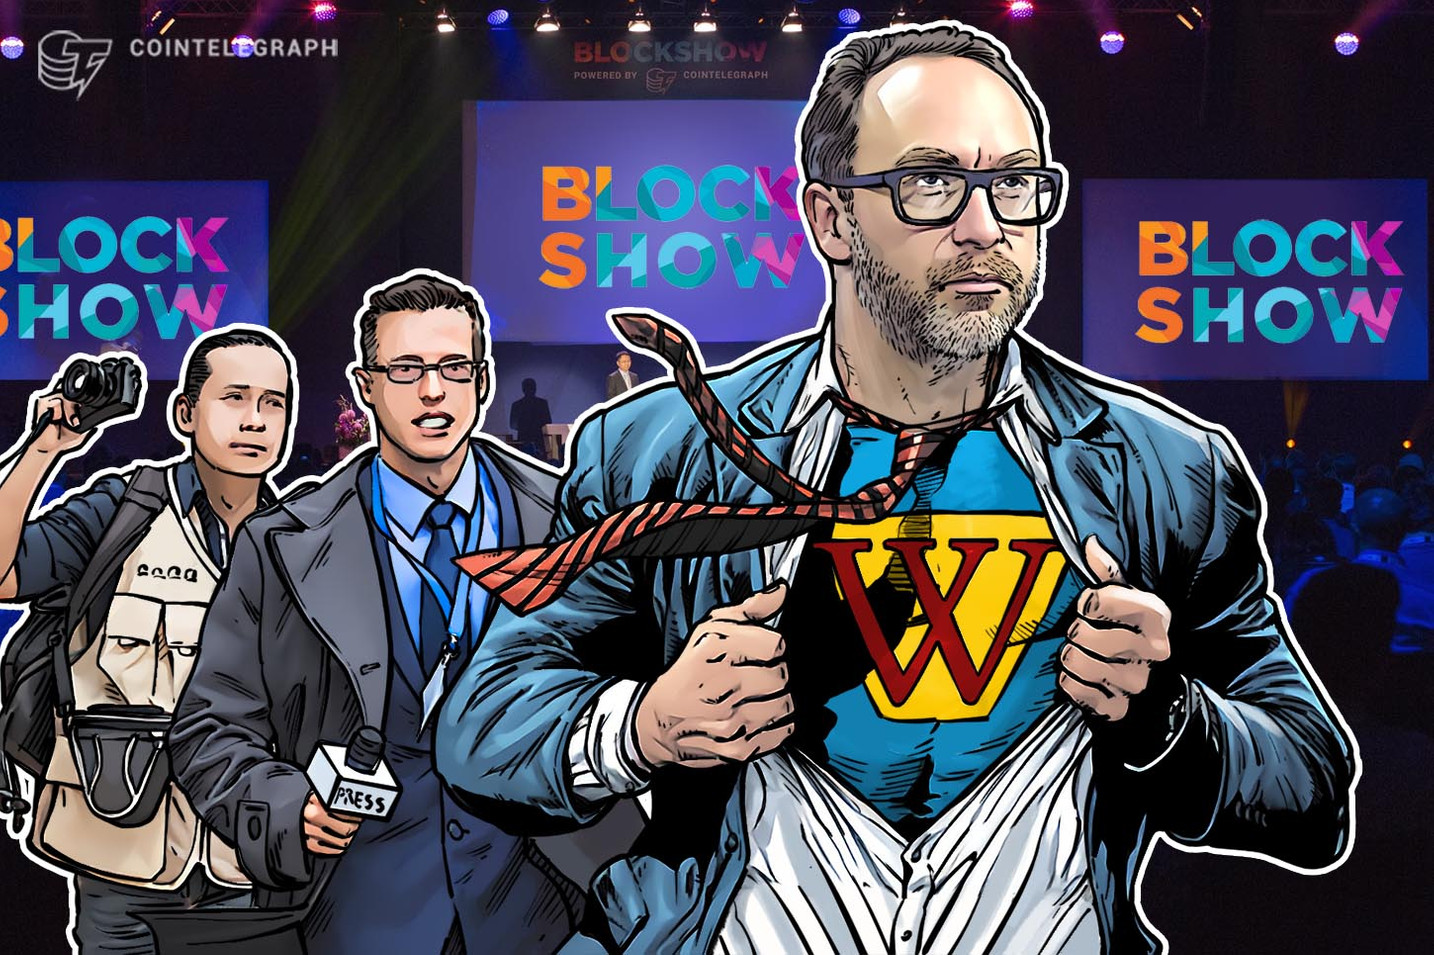 'You Can't Ban Blockchain. It's Math': a Talk with Jimmy Wales